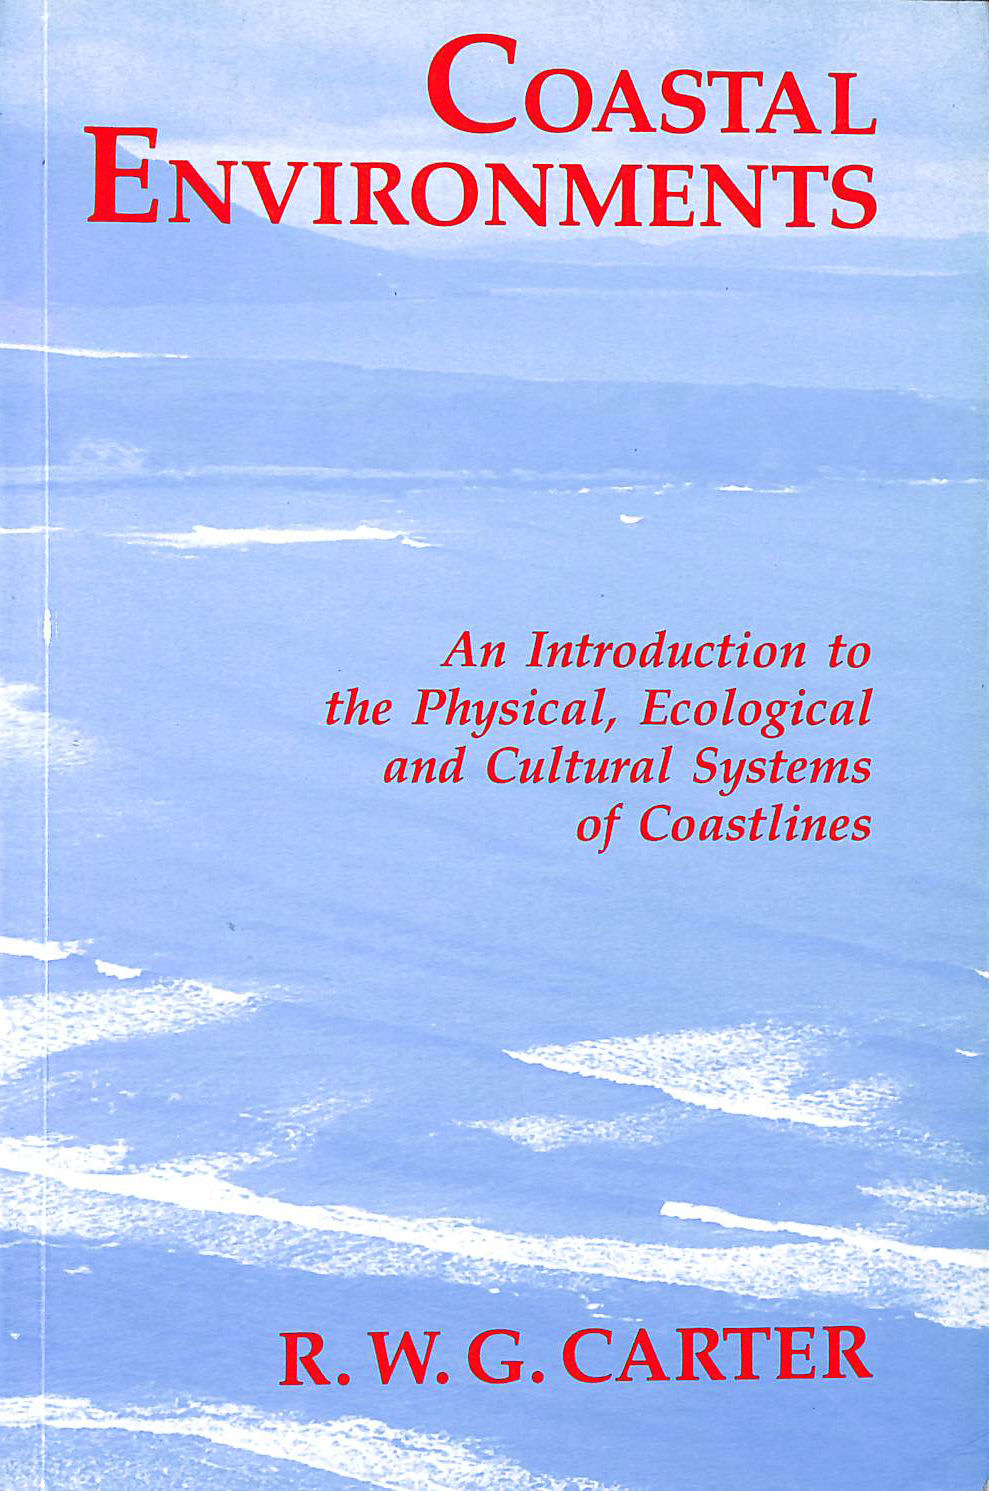 Image for Coastal Environments: An Introduction to the Physical, Ecological, and Cultural Systems of Coastlines